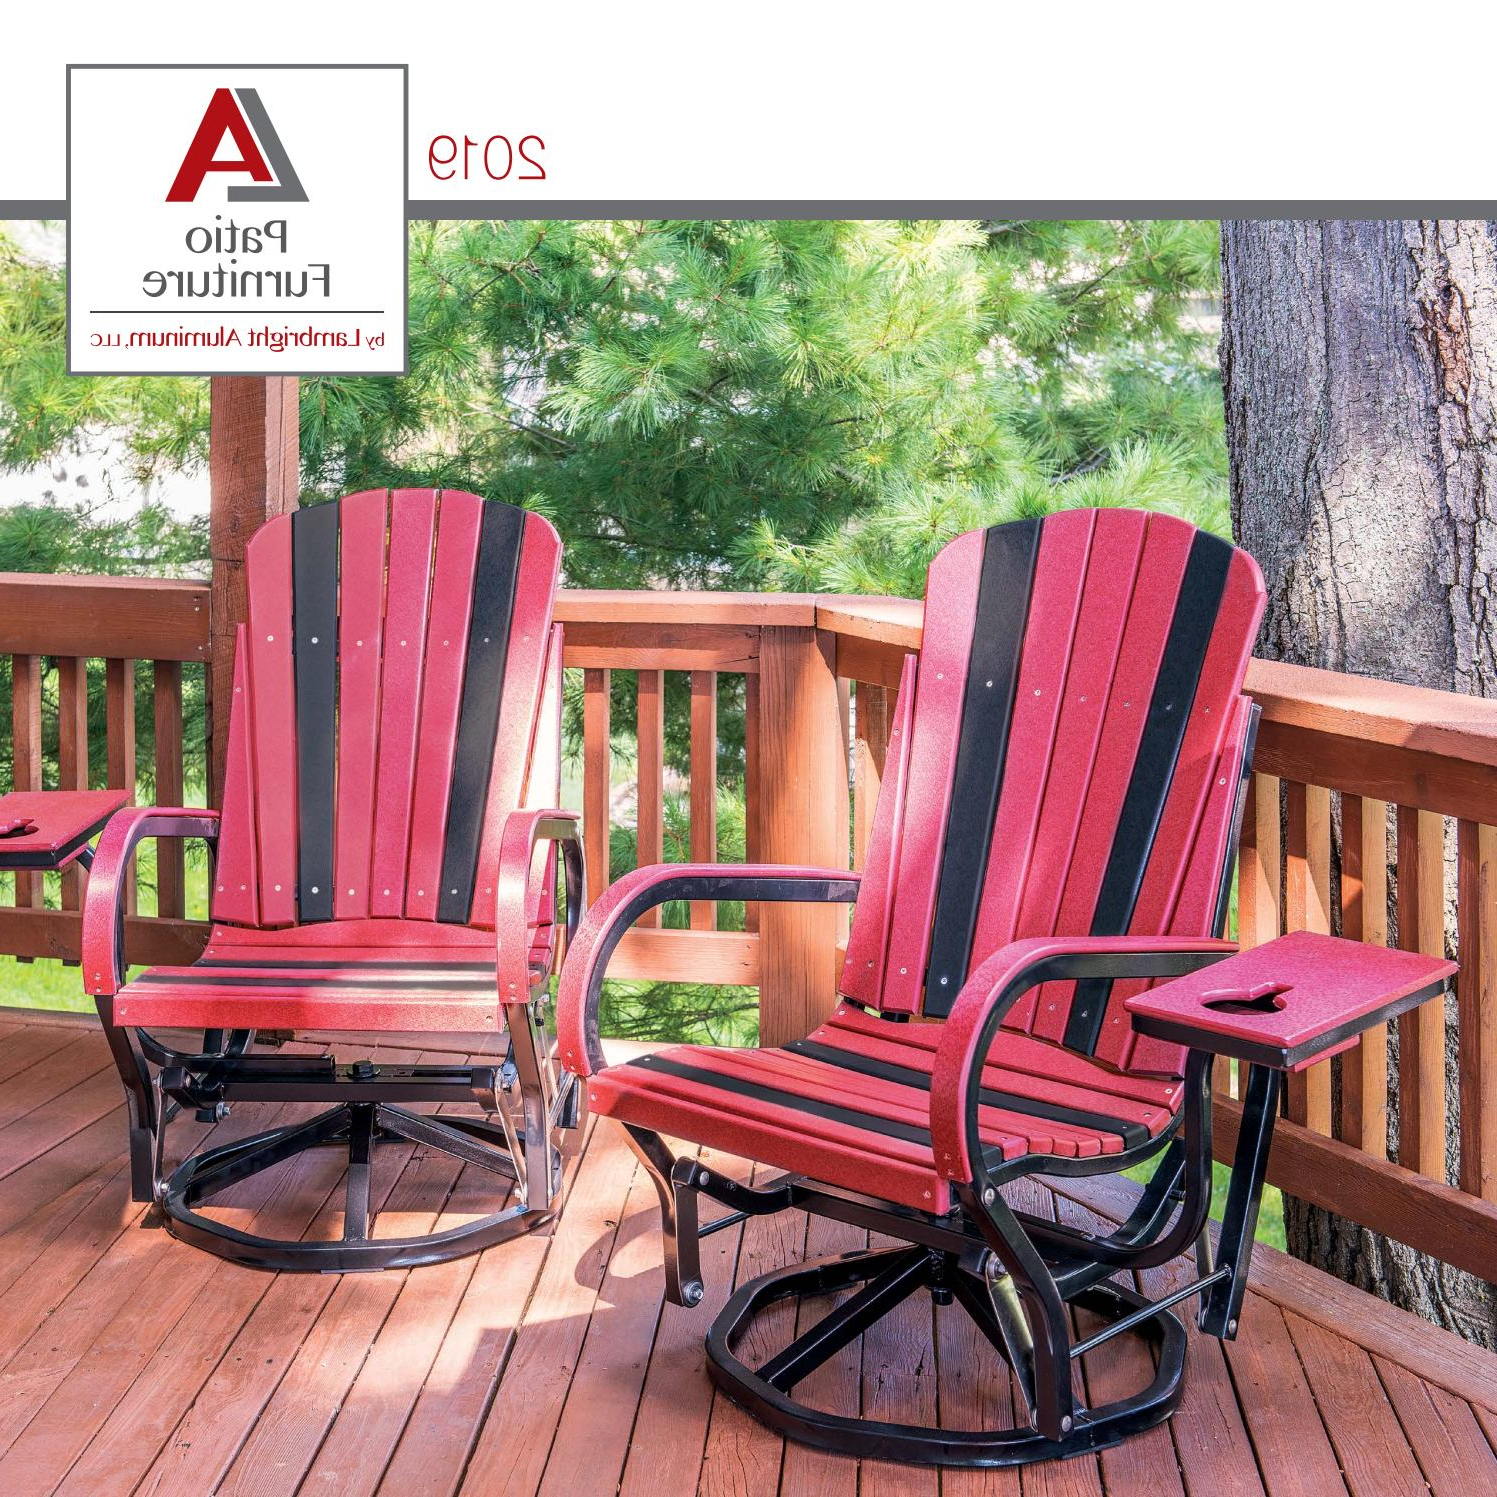 La Patio Furnitureonlineamishfurniture – Issuu With Best And Newest Aluminum Outdoor Double Glider Benches (View 17 of 30)